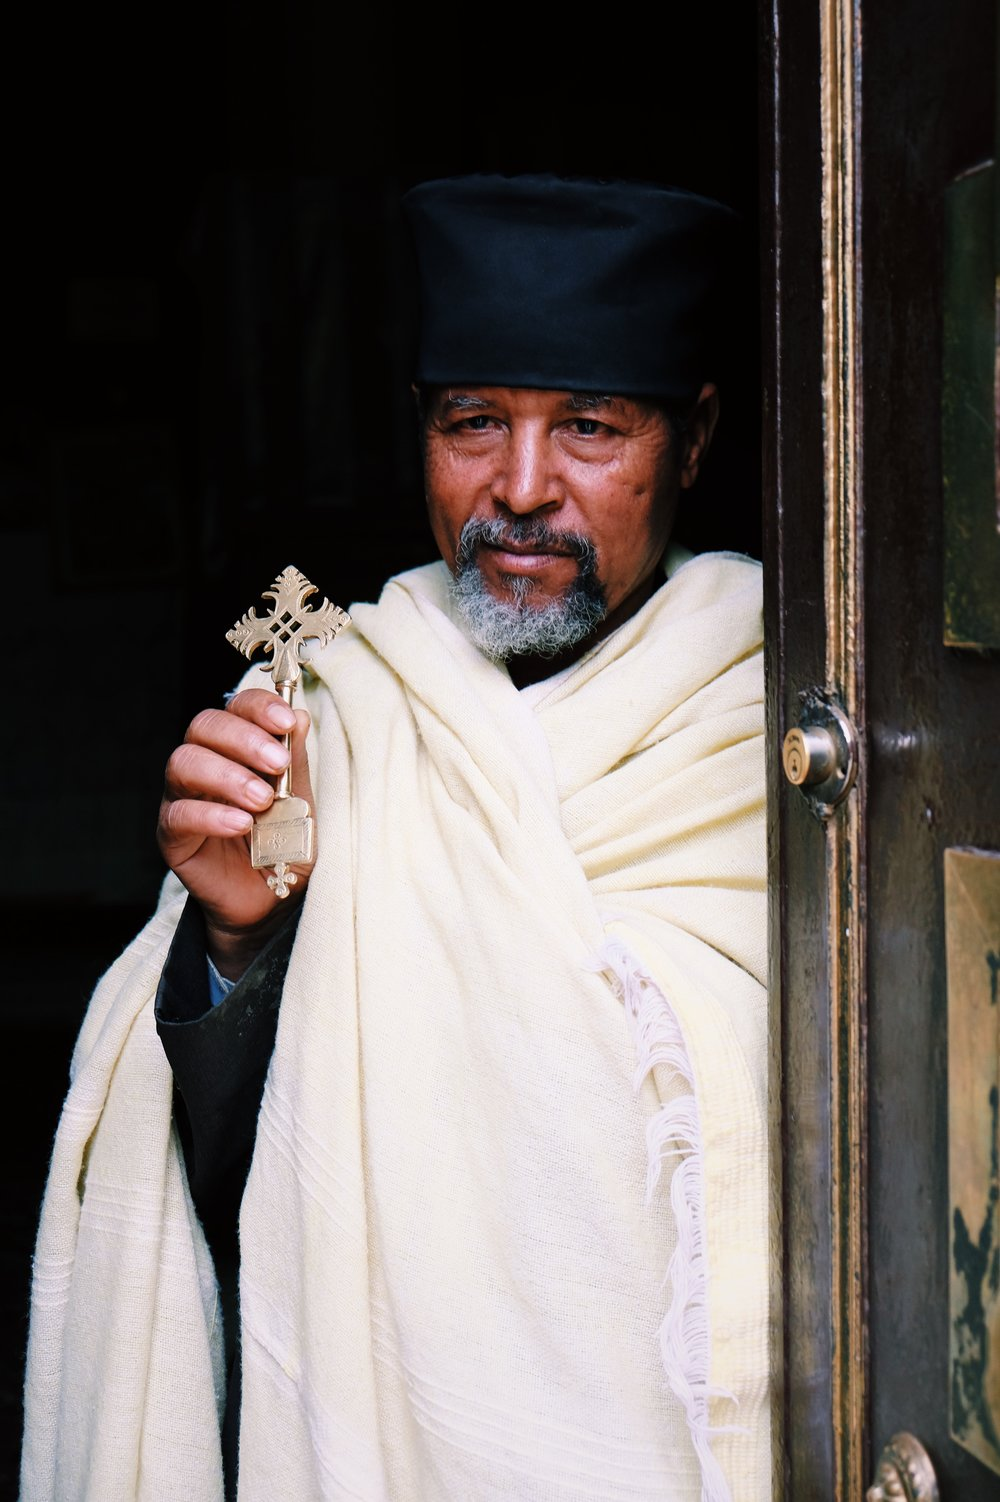 Monk in Addis, St George in Ethiopia by Joost Bastmeijer.jpeg